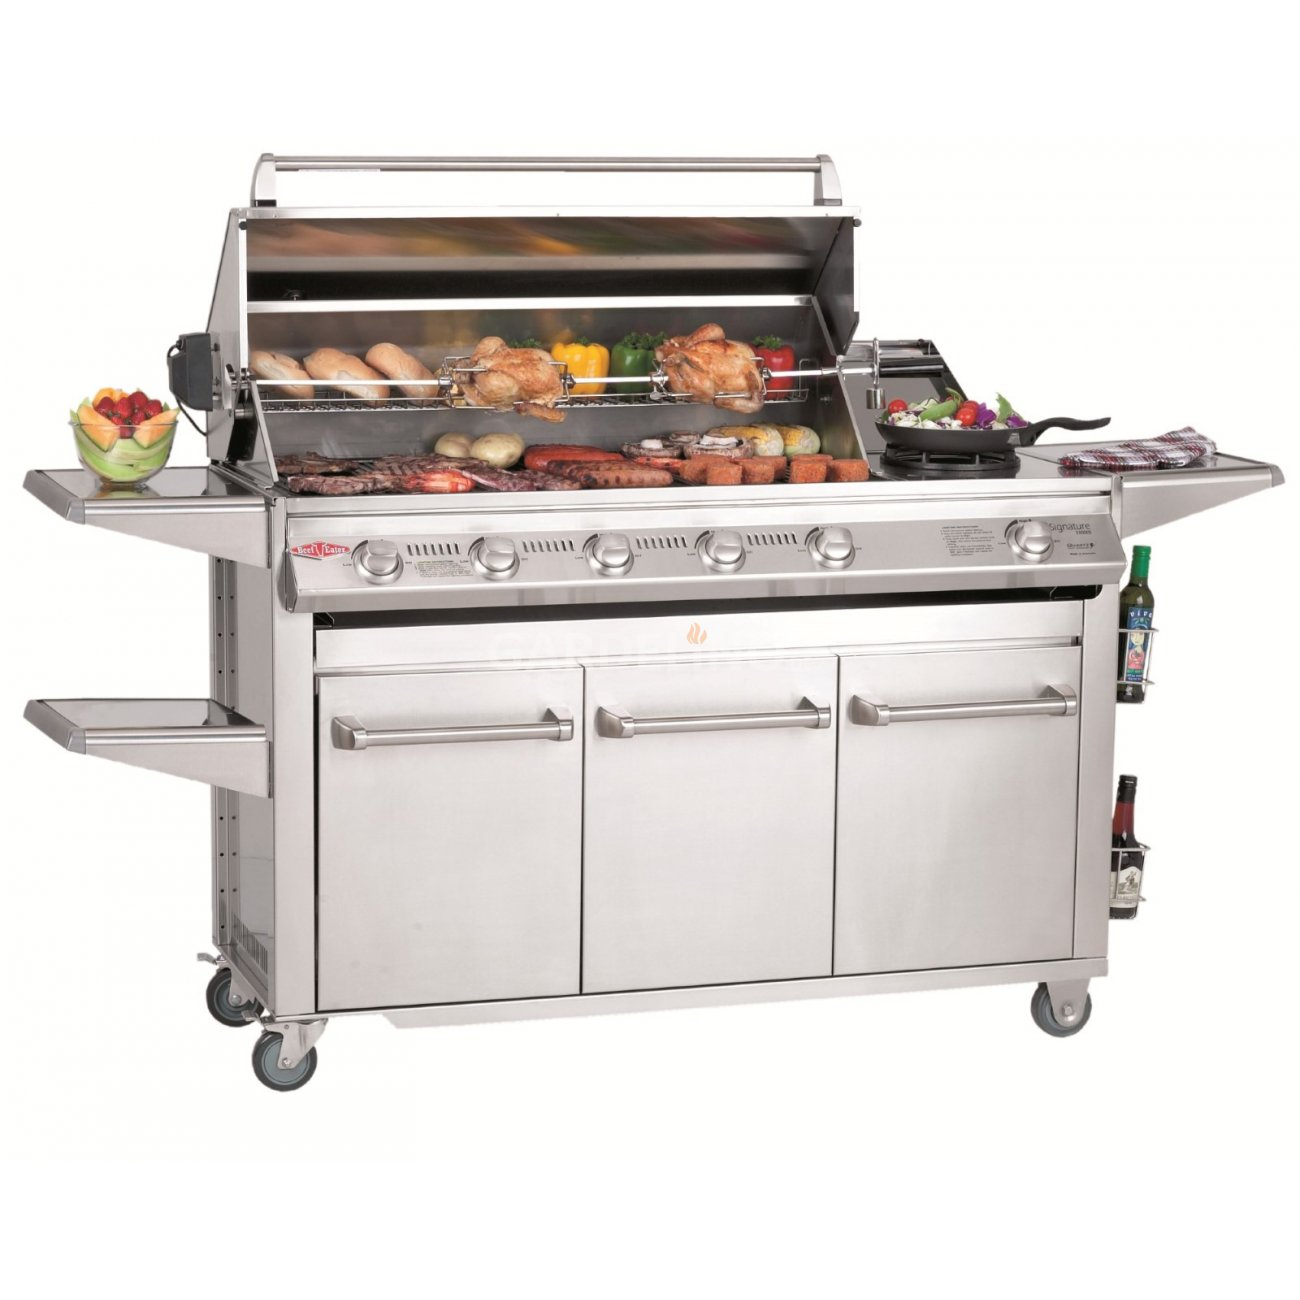 beefeater bbq gasgrill trolley signature sl 4000. Black Bedroom Furniture Sets. Home Design Ideas